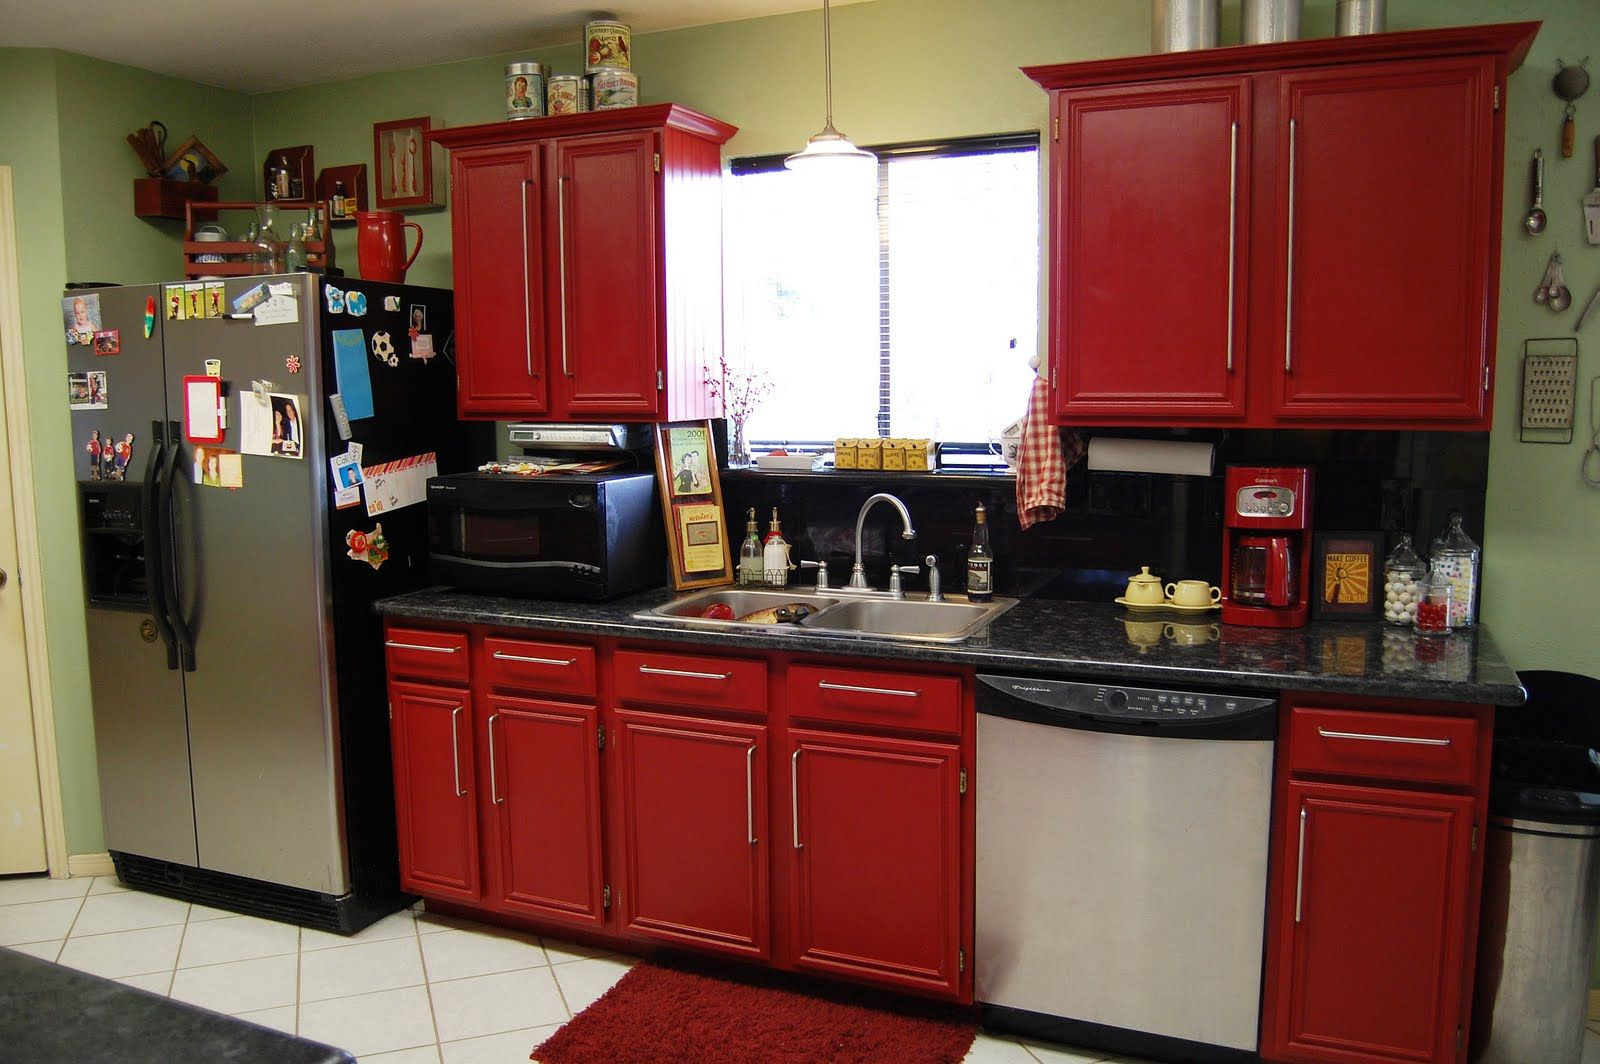 Attractive Kitchen Furniture With Red Kitchen Cabinet Between Small Window On Calm Wall Red Kitchen Cabinets Modern Kitchen Cabinet Design Kitchen Design Small